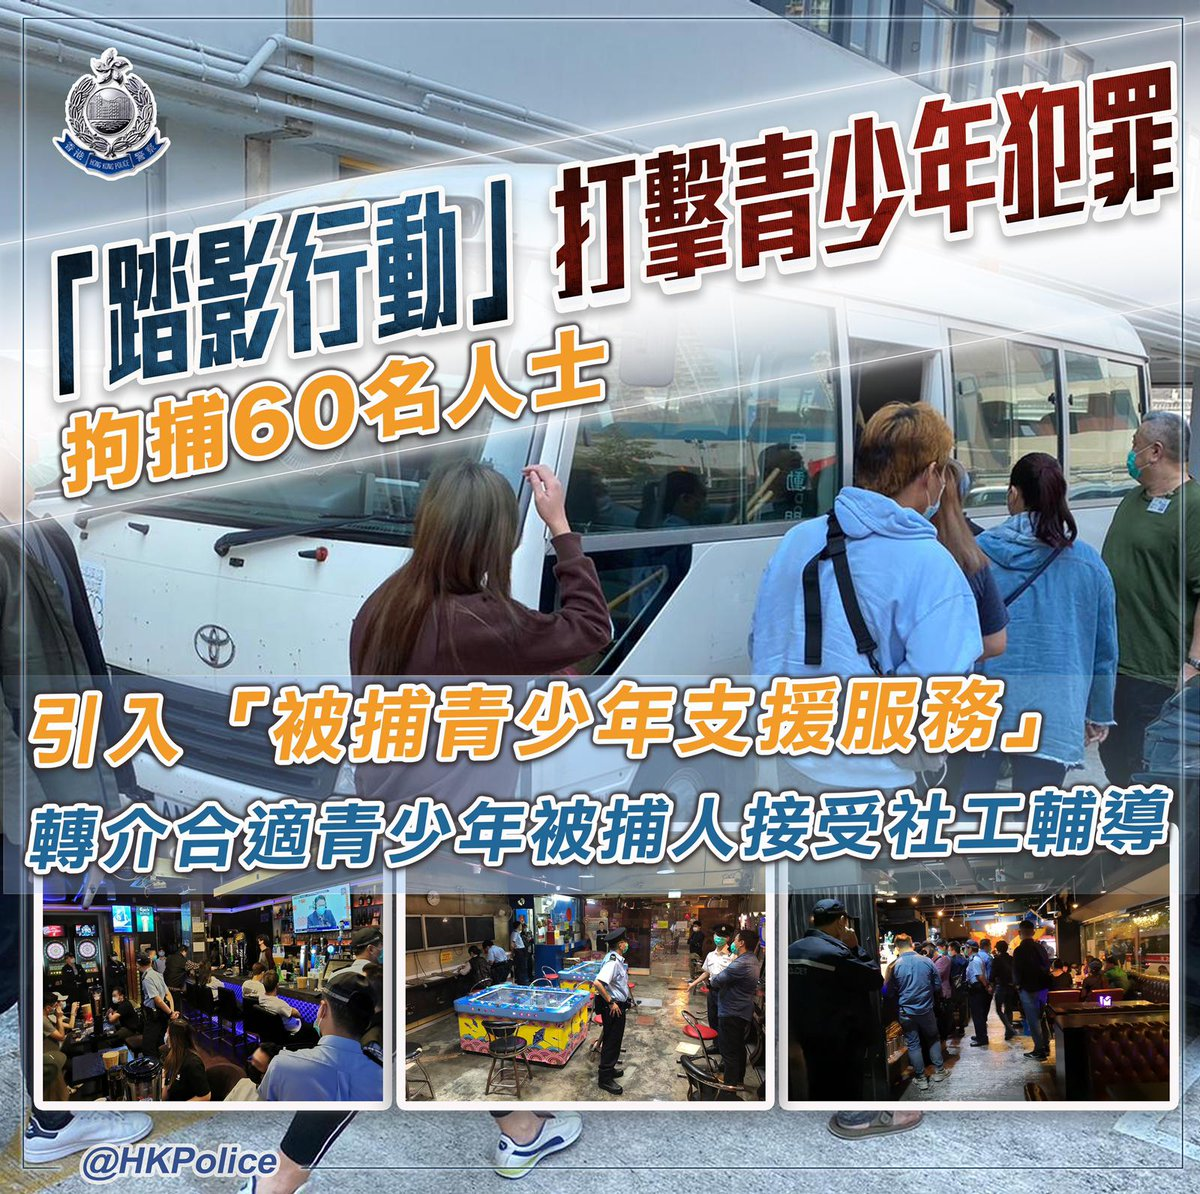 【 Operation STEPSHADOW to combat juvenile delinquency in Tuen Mun District • 60 males and females arrested 】